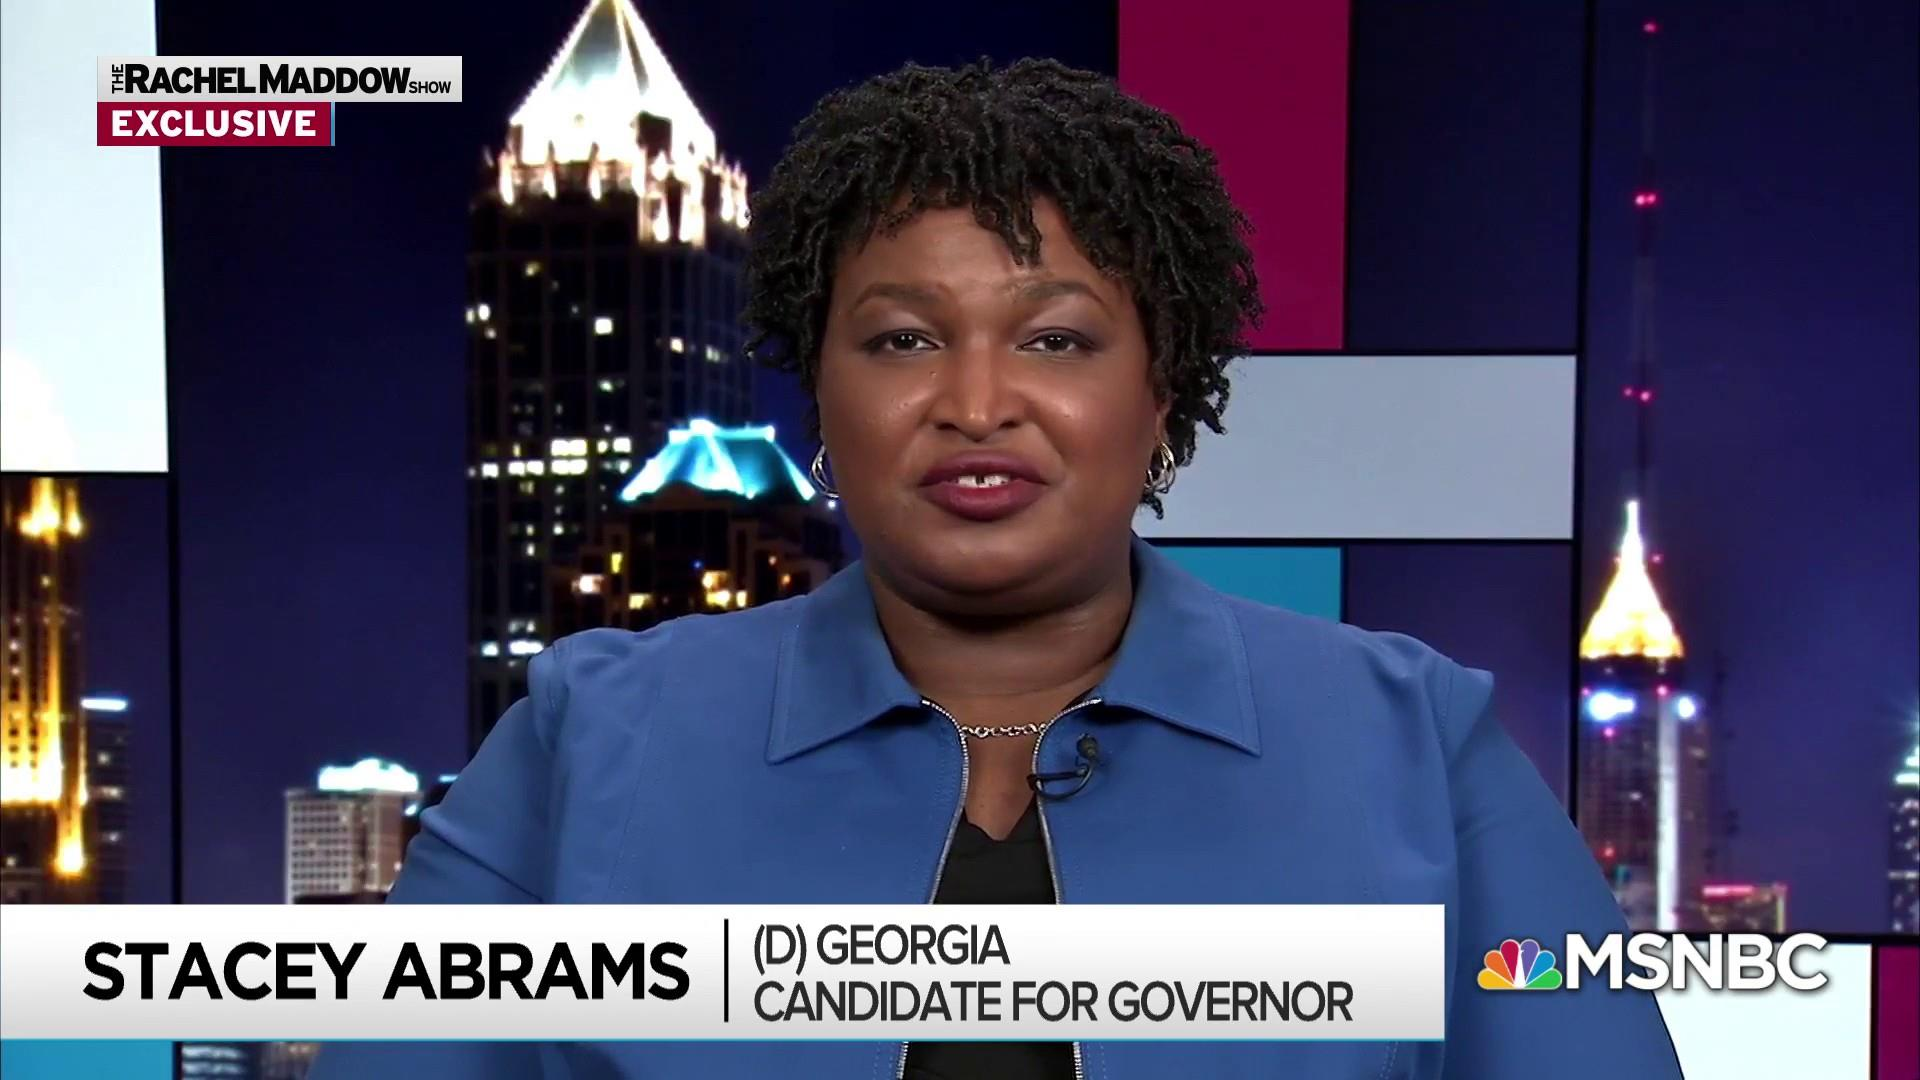 Outreach to 'infrequent voters' key to Democratic strategy in GA